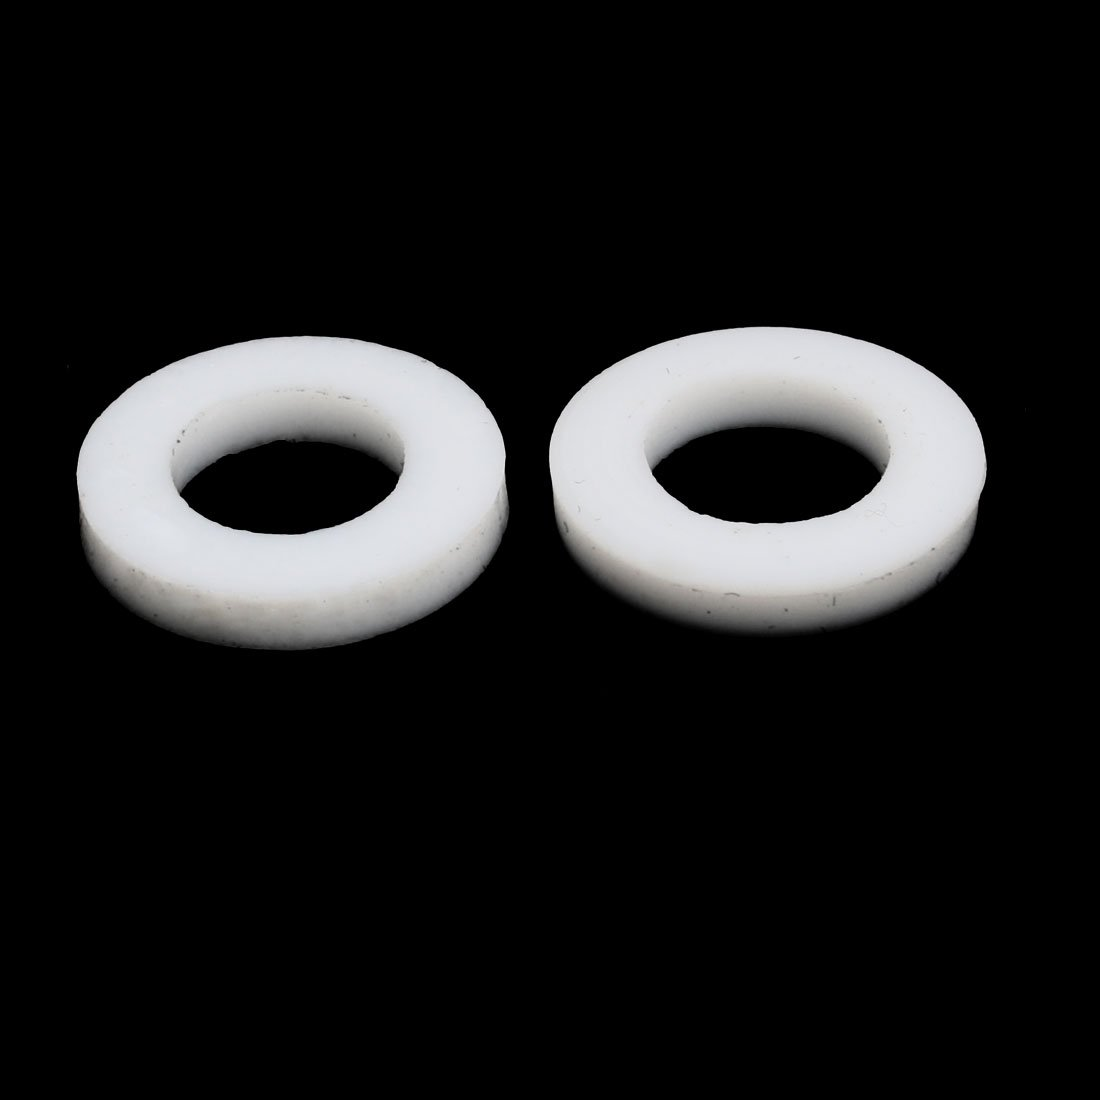 uxcell PTFE Flat Washers 18mm OD 10mm ID 2mm Thickness Sealing Gasket for Faucet Pipe Water Hose White Pack of 20